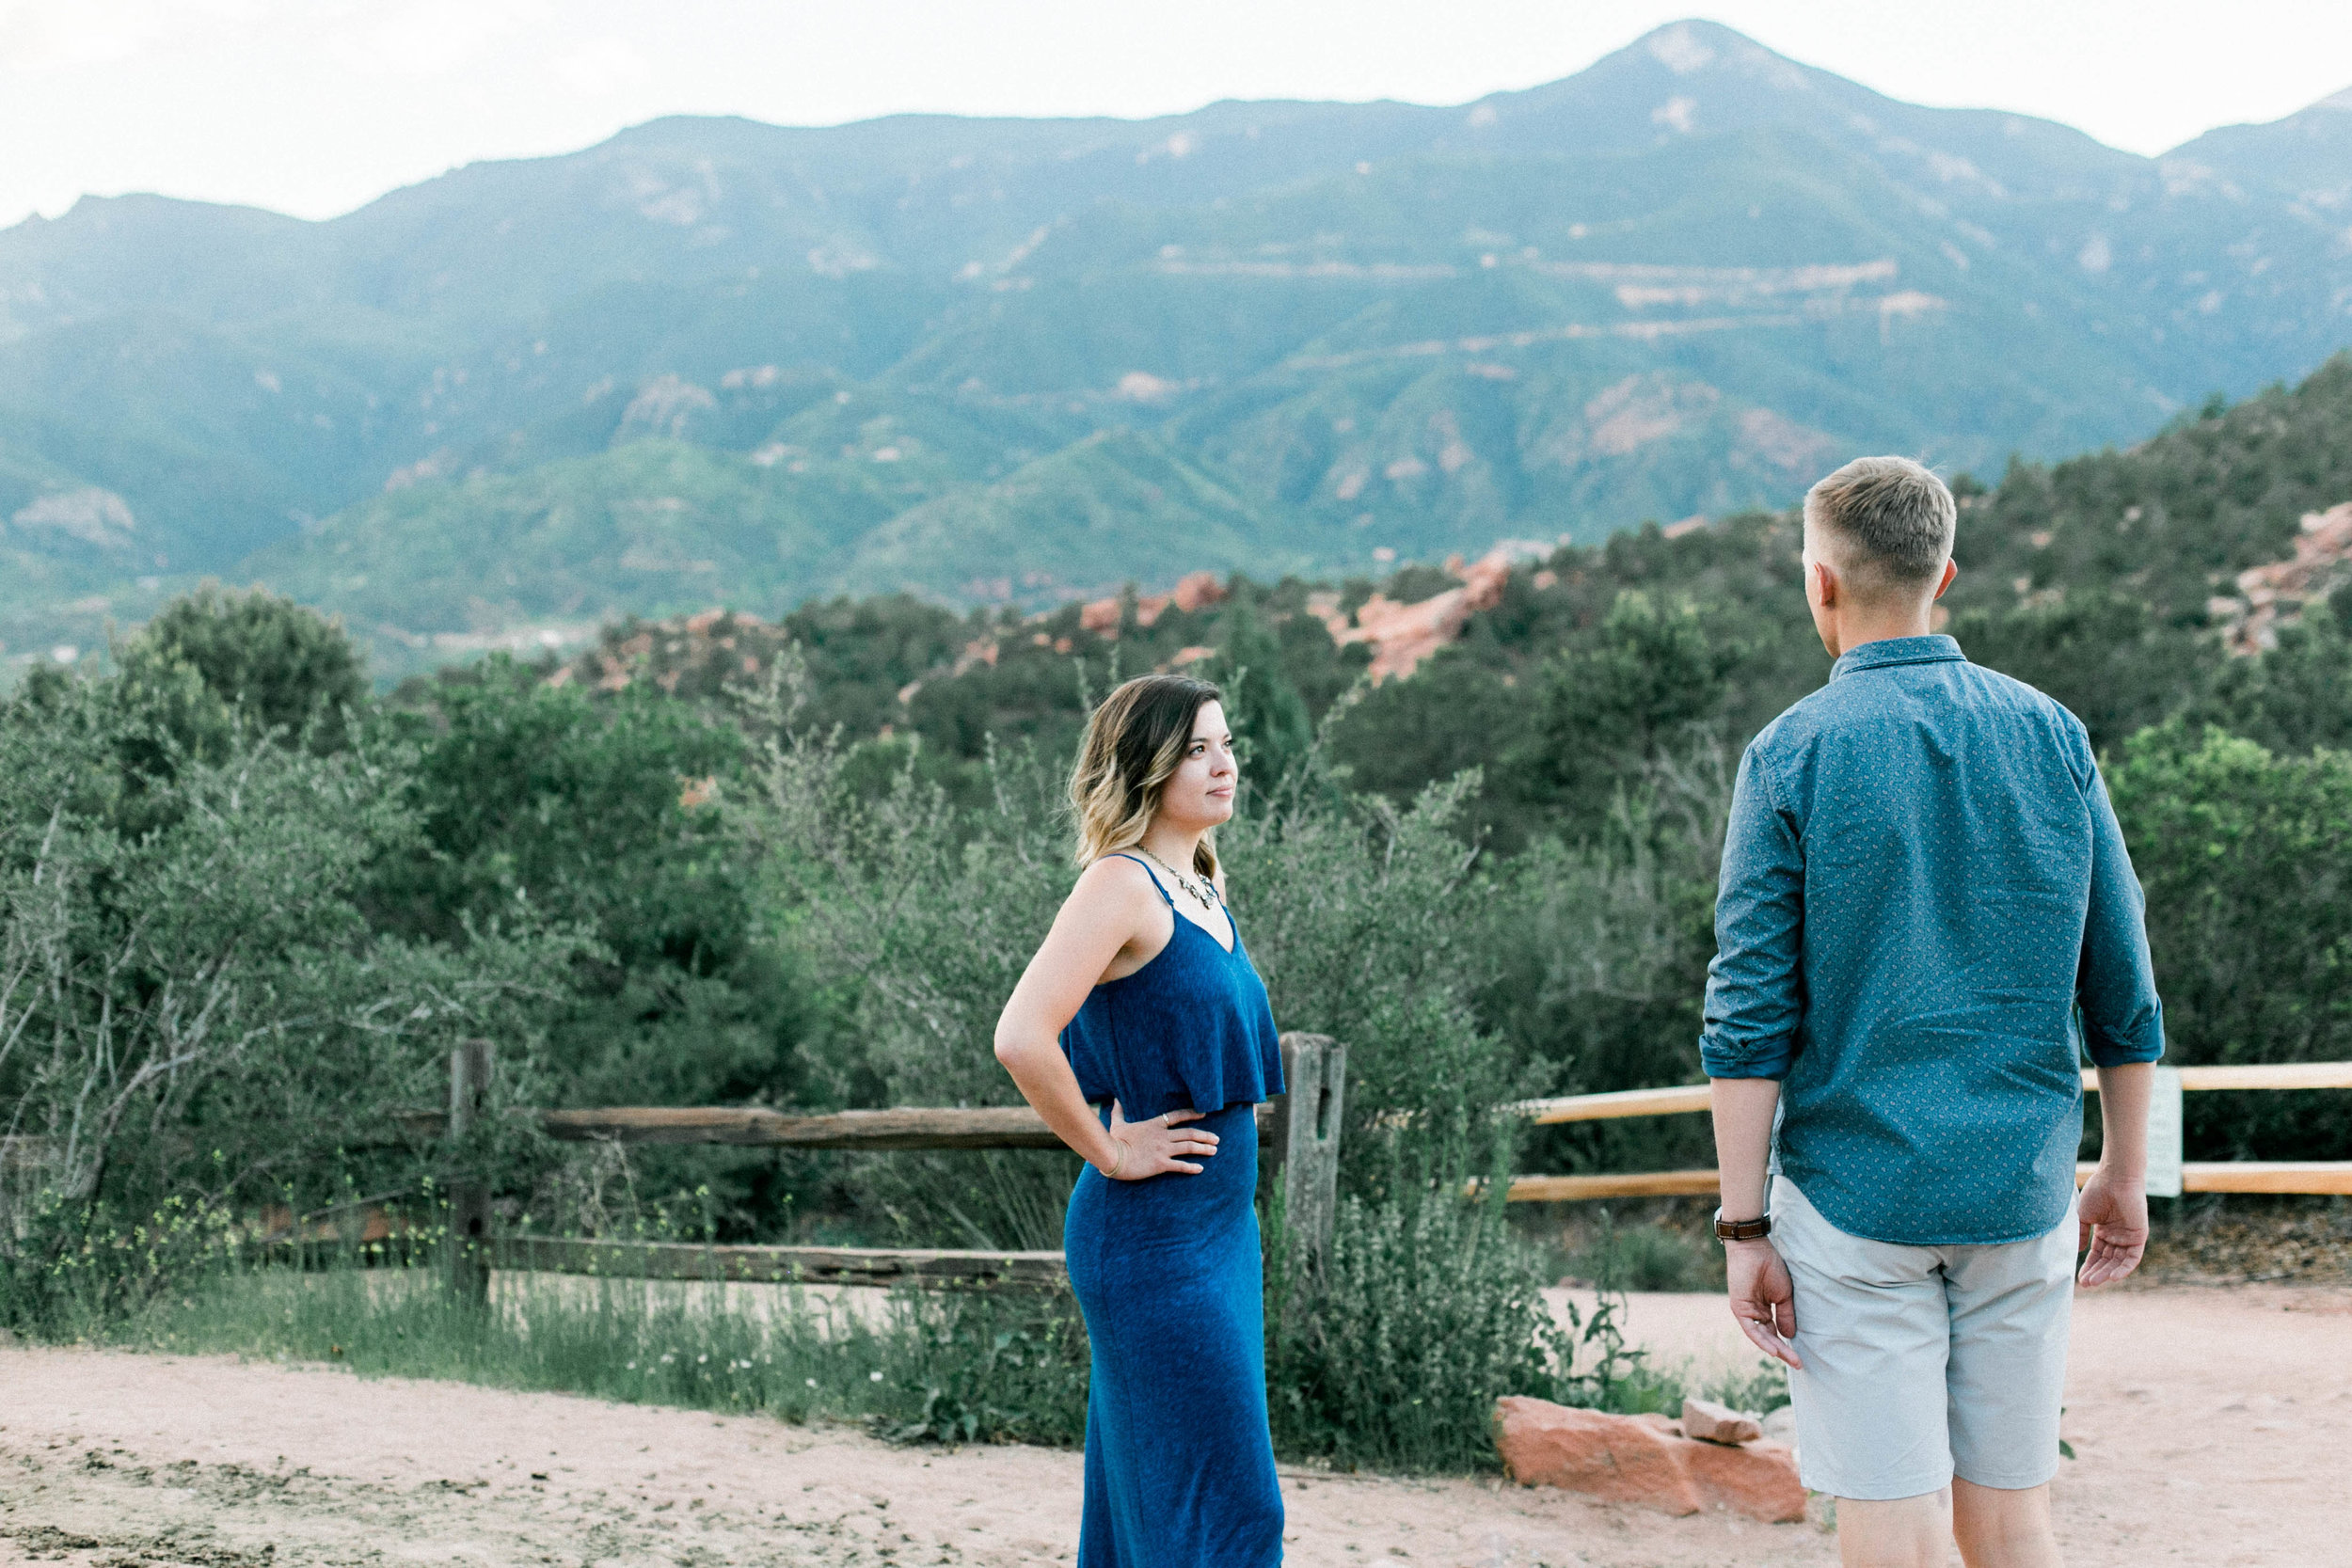 Colorado Springs Engagement Wedding Adventure Photographer - Erin and Jim 28.jpg